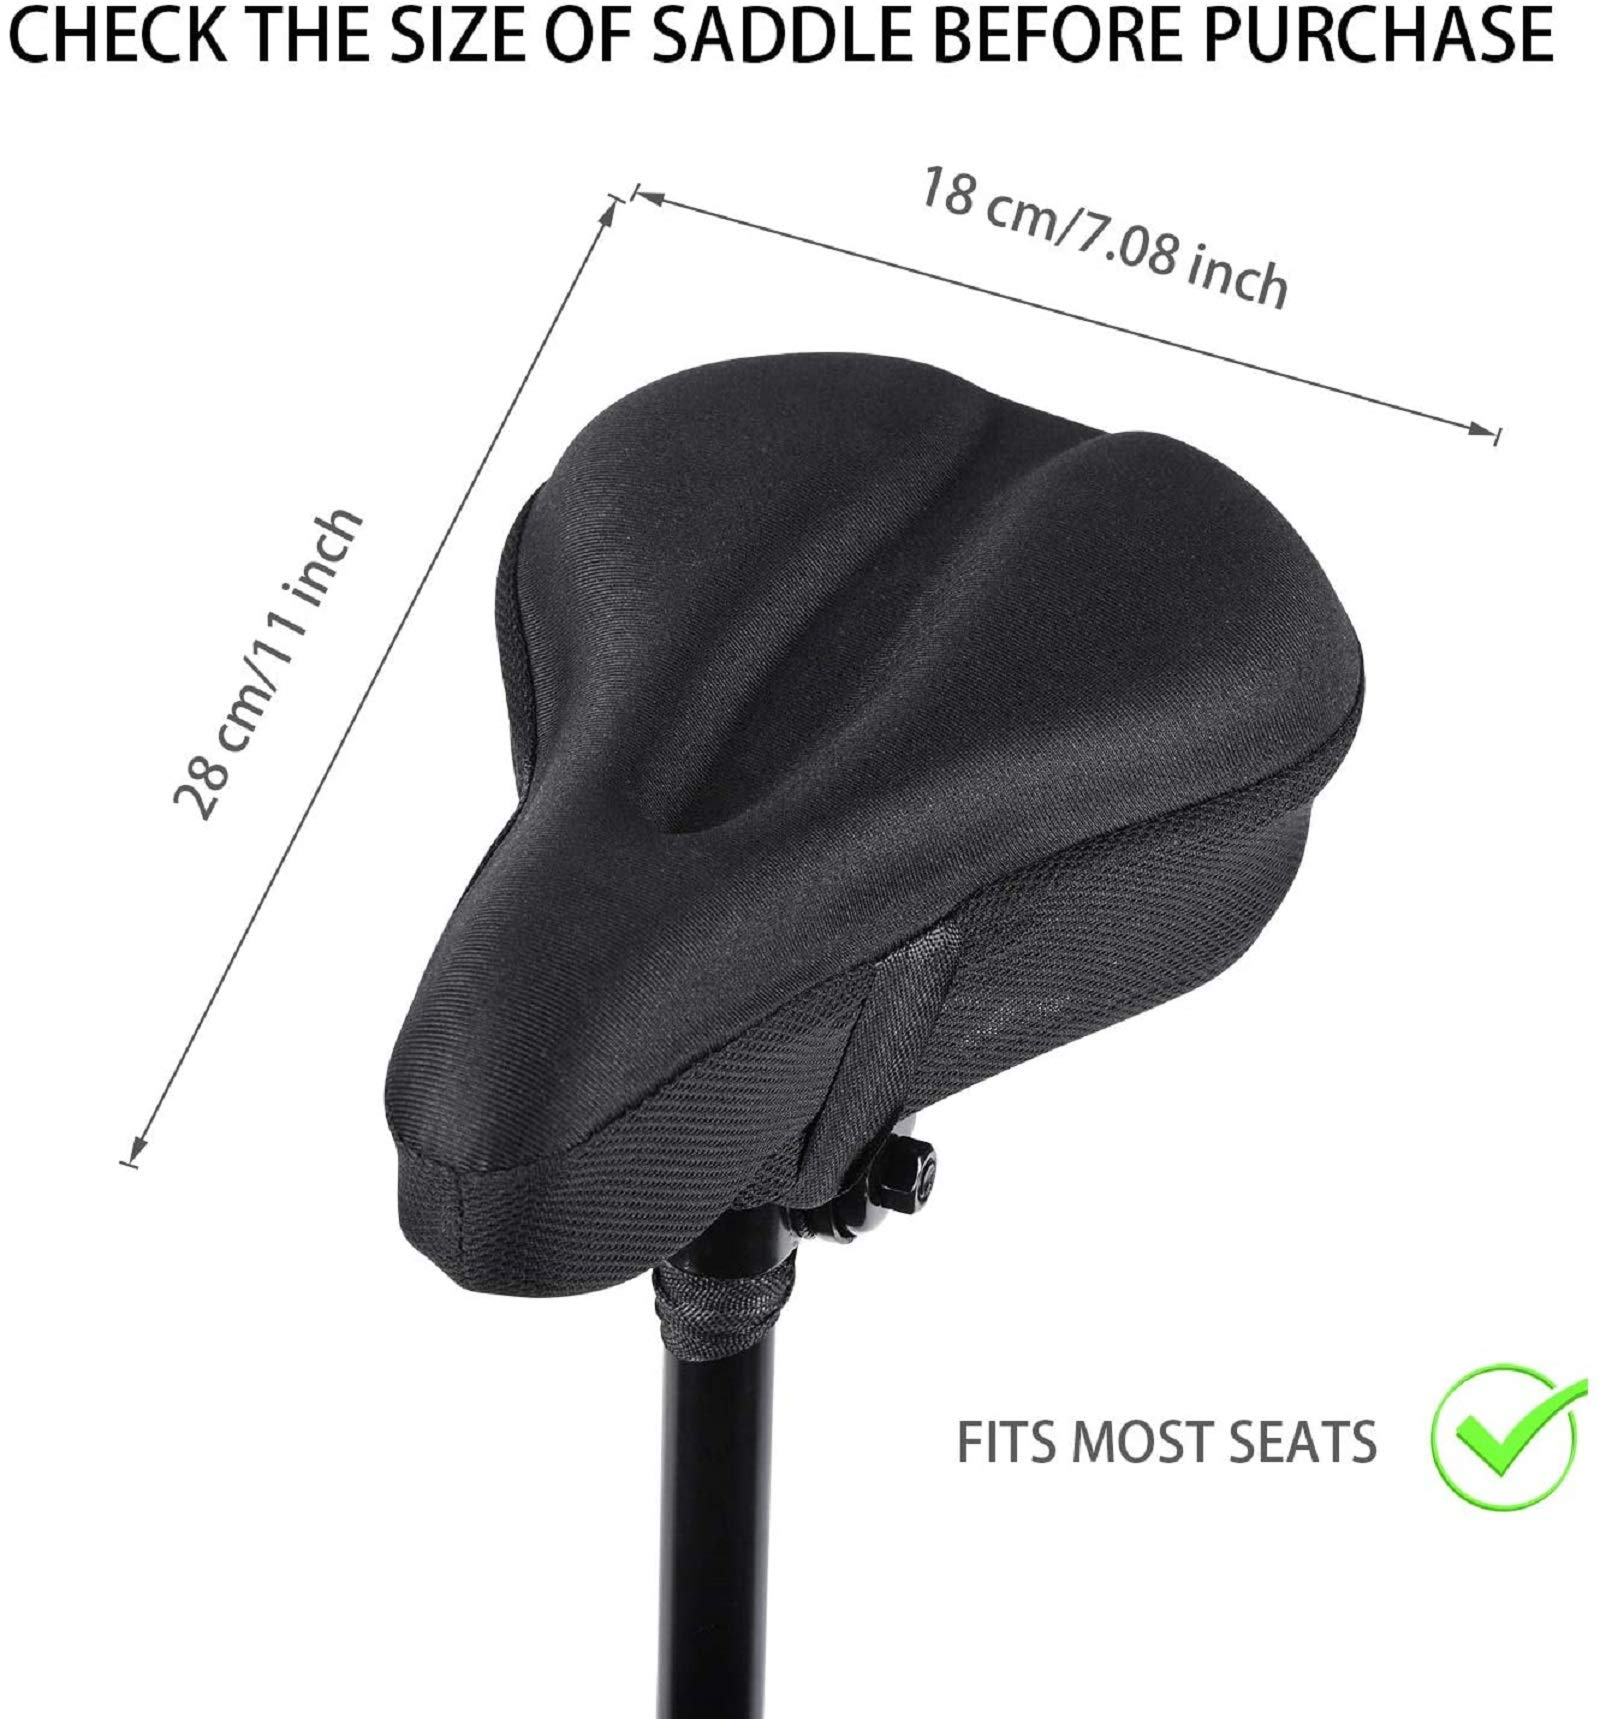 Aharin Comfort Bike Seat Cover Comfortable Replacement Bicycle Saddle Bicycle Extra Padding Soft Gel Cushion Comfort Soft Silicone Bicycle Seat Pad for Mountain Road Bike 11.4 inches x 7.4 inches